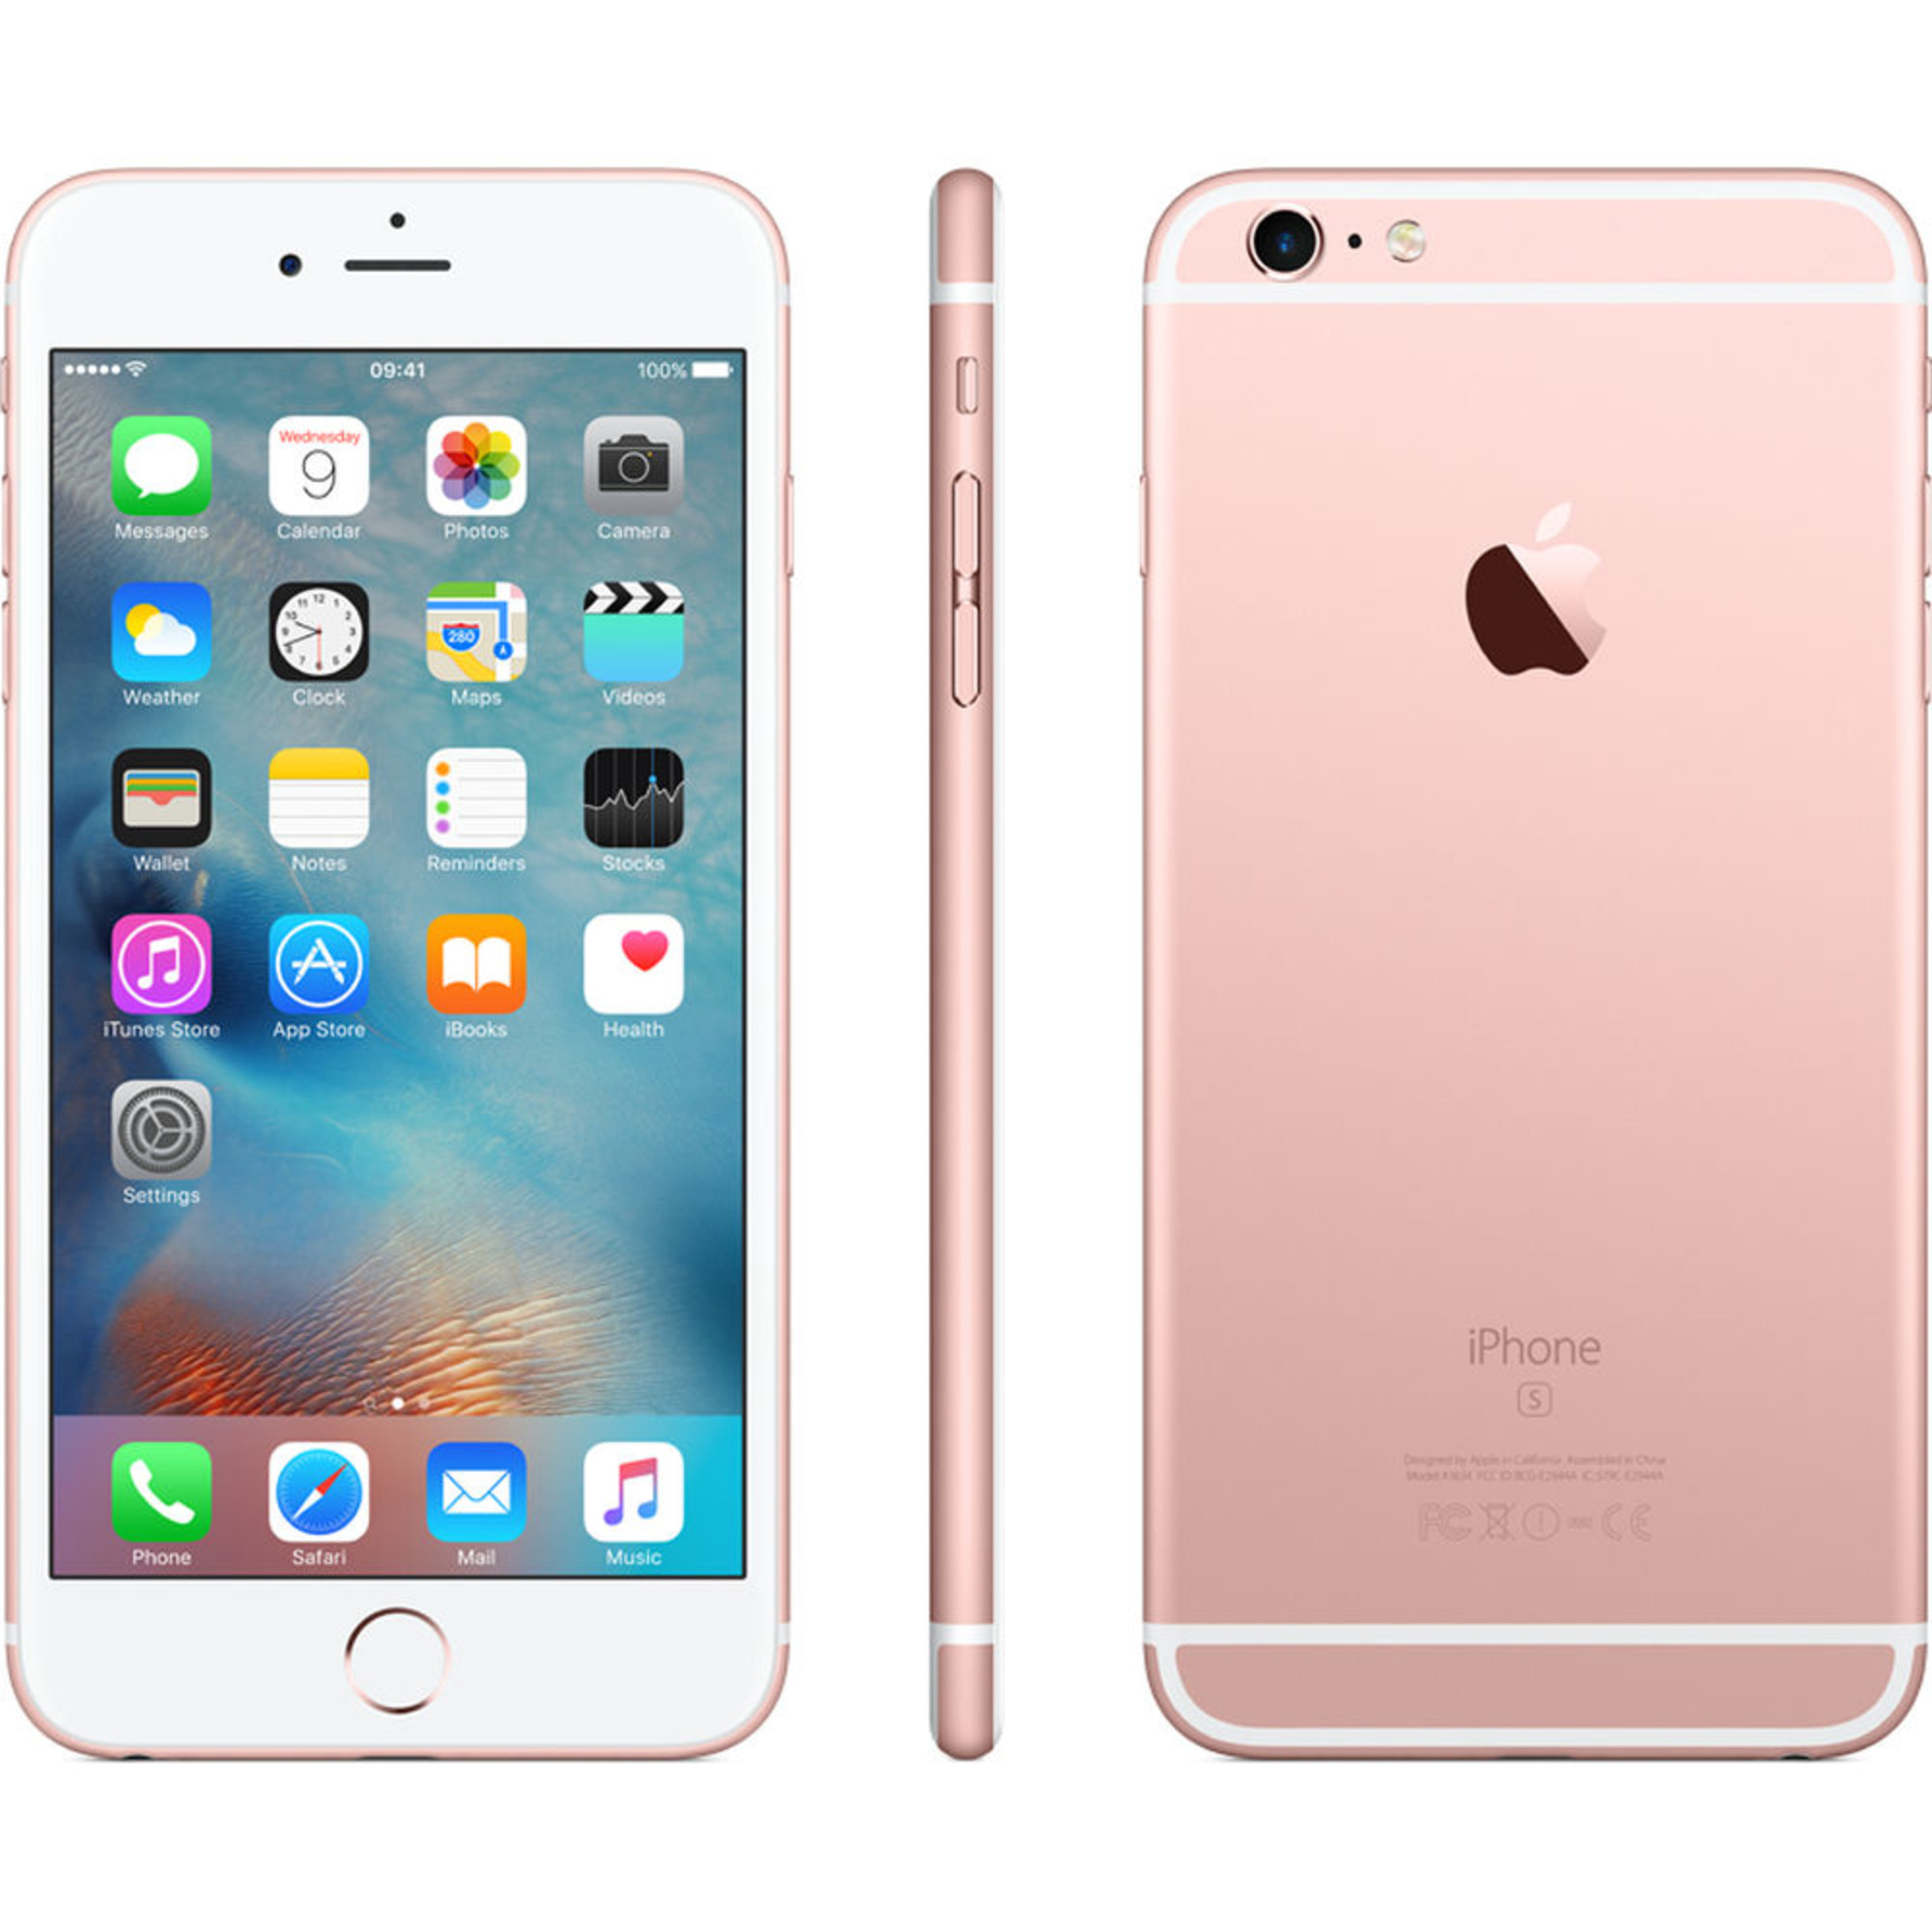 apple iphone 6s plus 16gb unlocked gsm 4g lte 12mp phone certified refurbished ebay. Black Bedroom Furniture Sets. Home Design Ideas